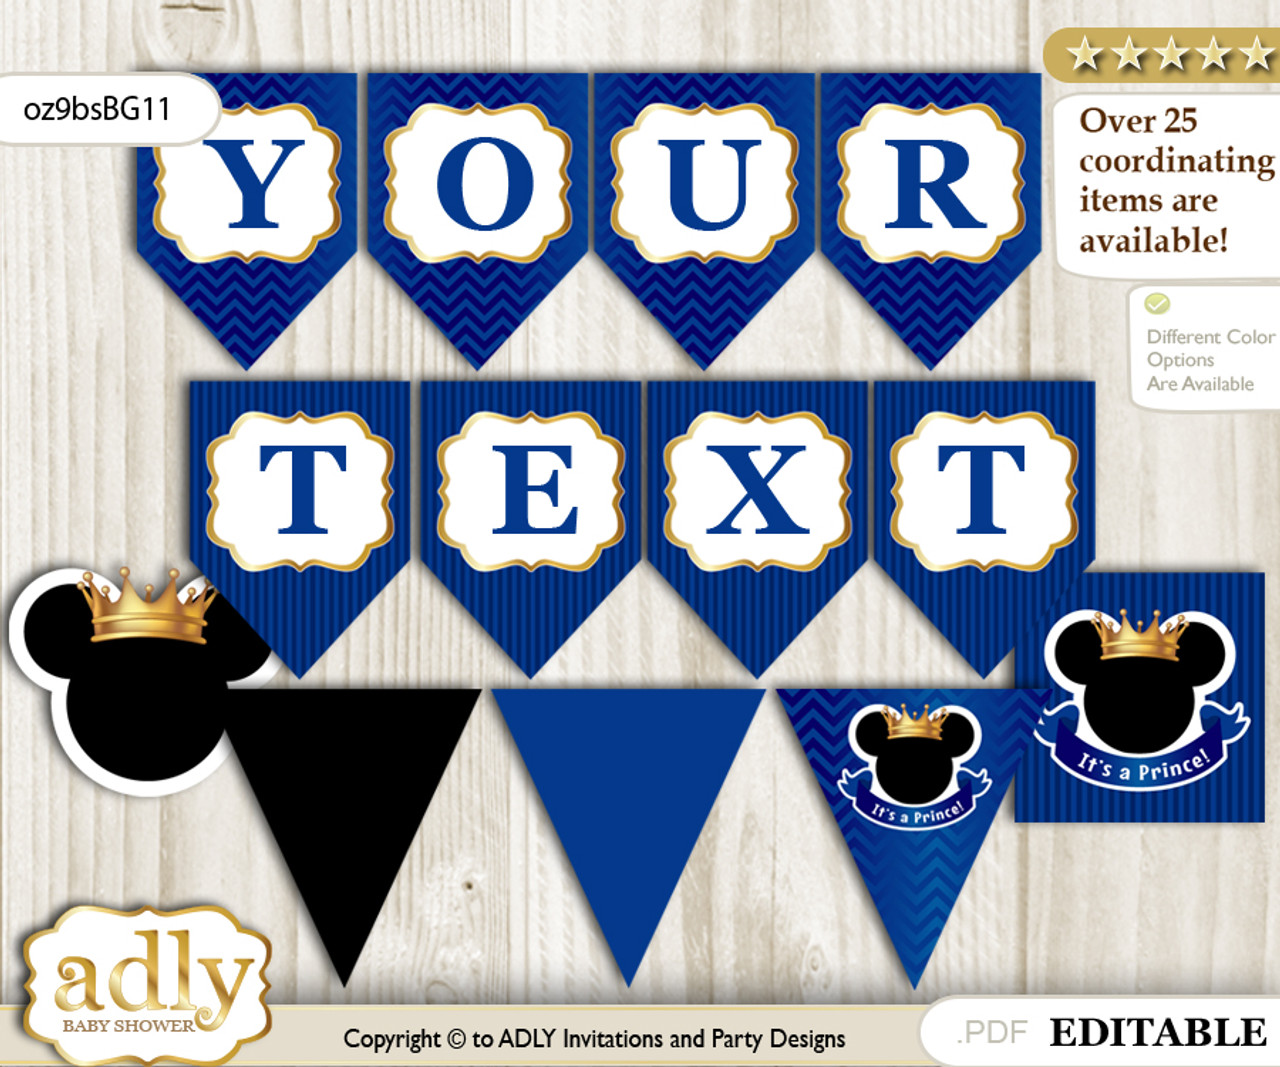 photo regarding Printable Banner named Do-it-yourself Personalizable Prince Mickey Printable Banner for Child Shower, Blue Gold, Royal n